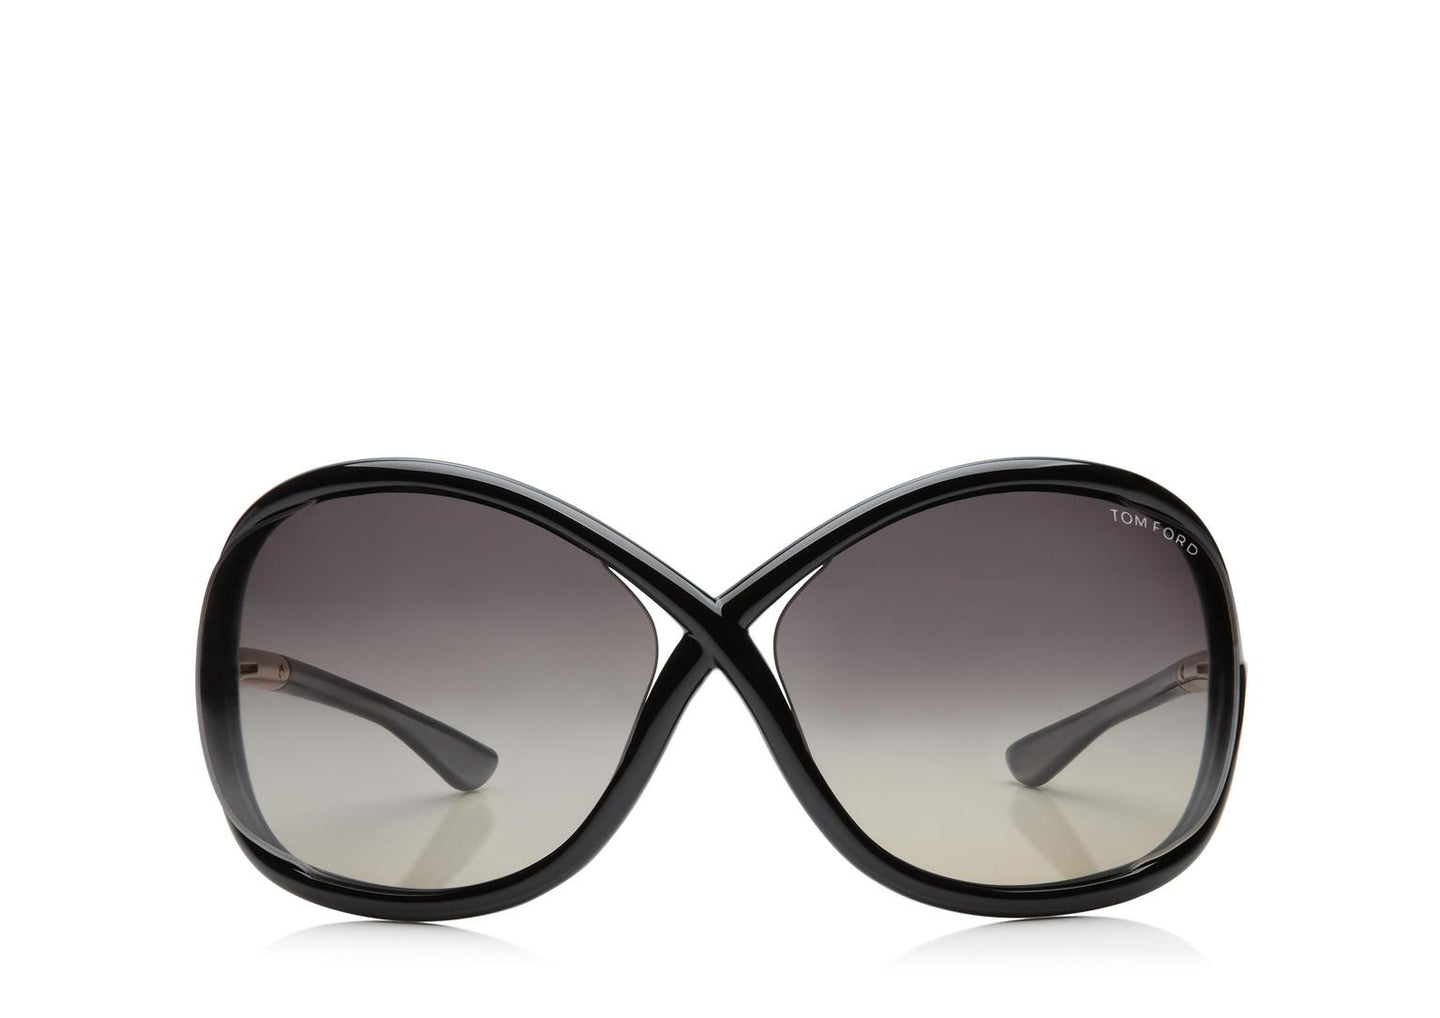 shades-of-charleston - Whitney - Tom Ford - Sunglasses